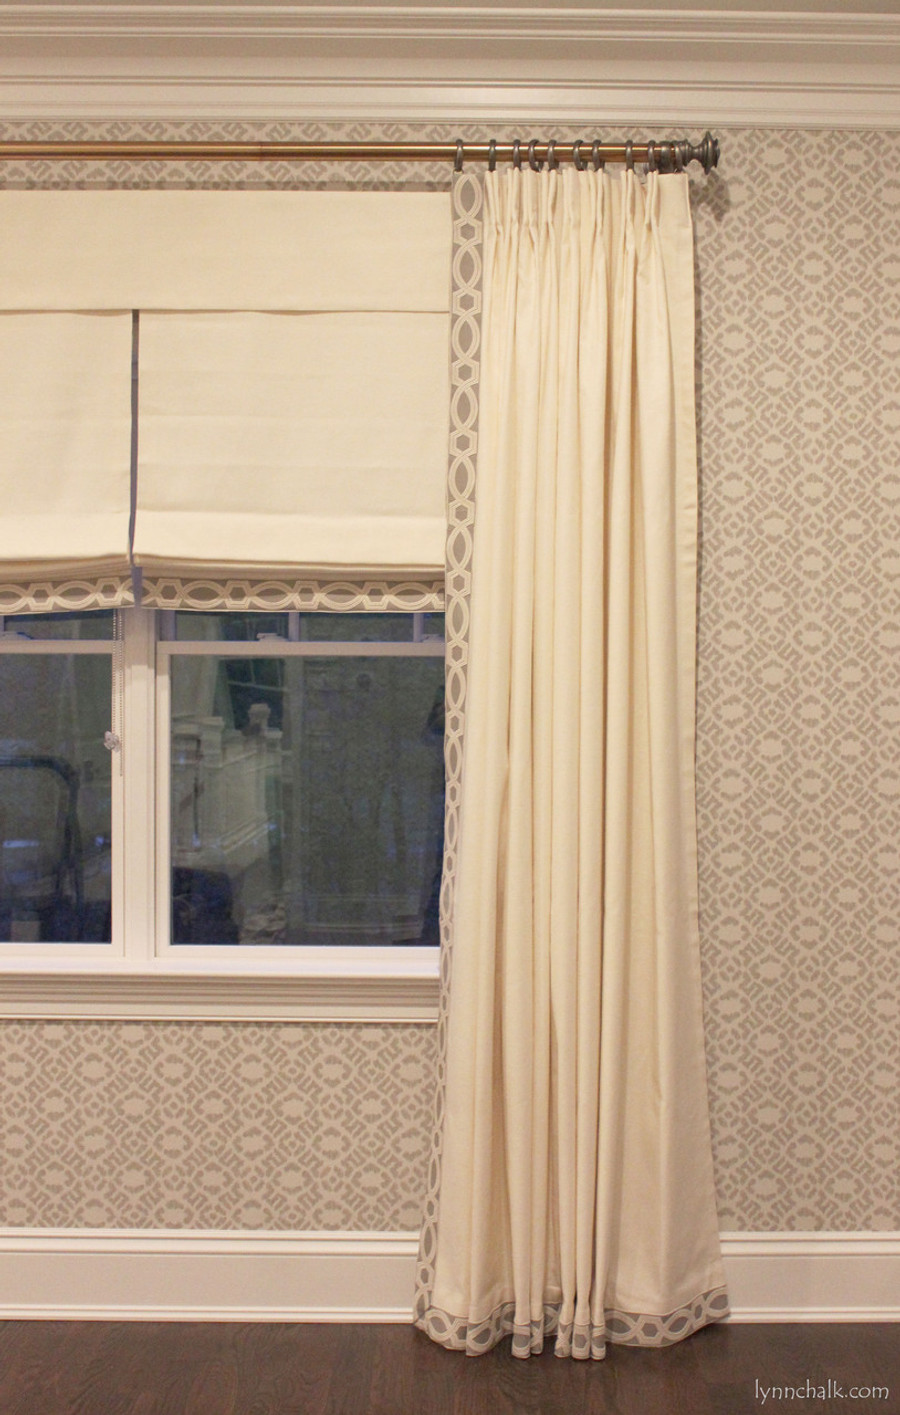 Drapes and Roman Shades in Trend 01838T 07 with Samuel & Sons 977 56199 Trim.   Fabricut Wallpaper 50025W Diamante Grey 03.